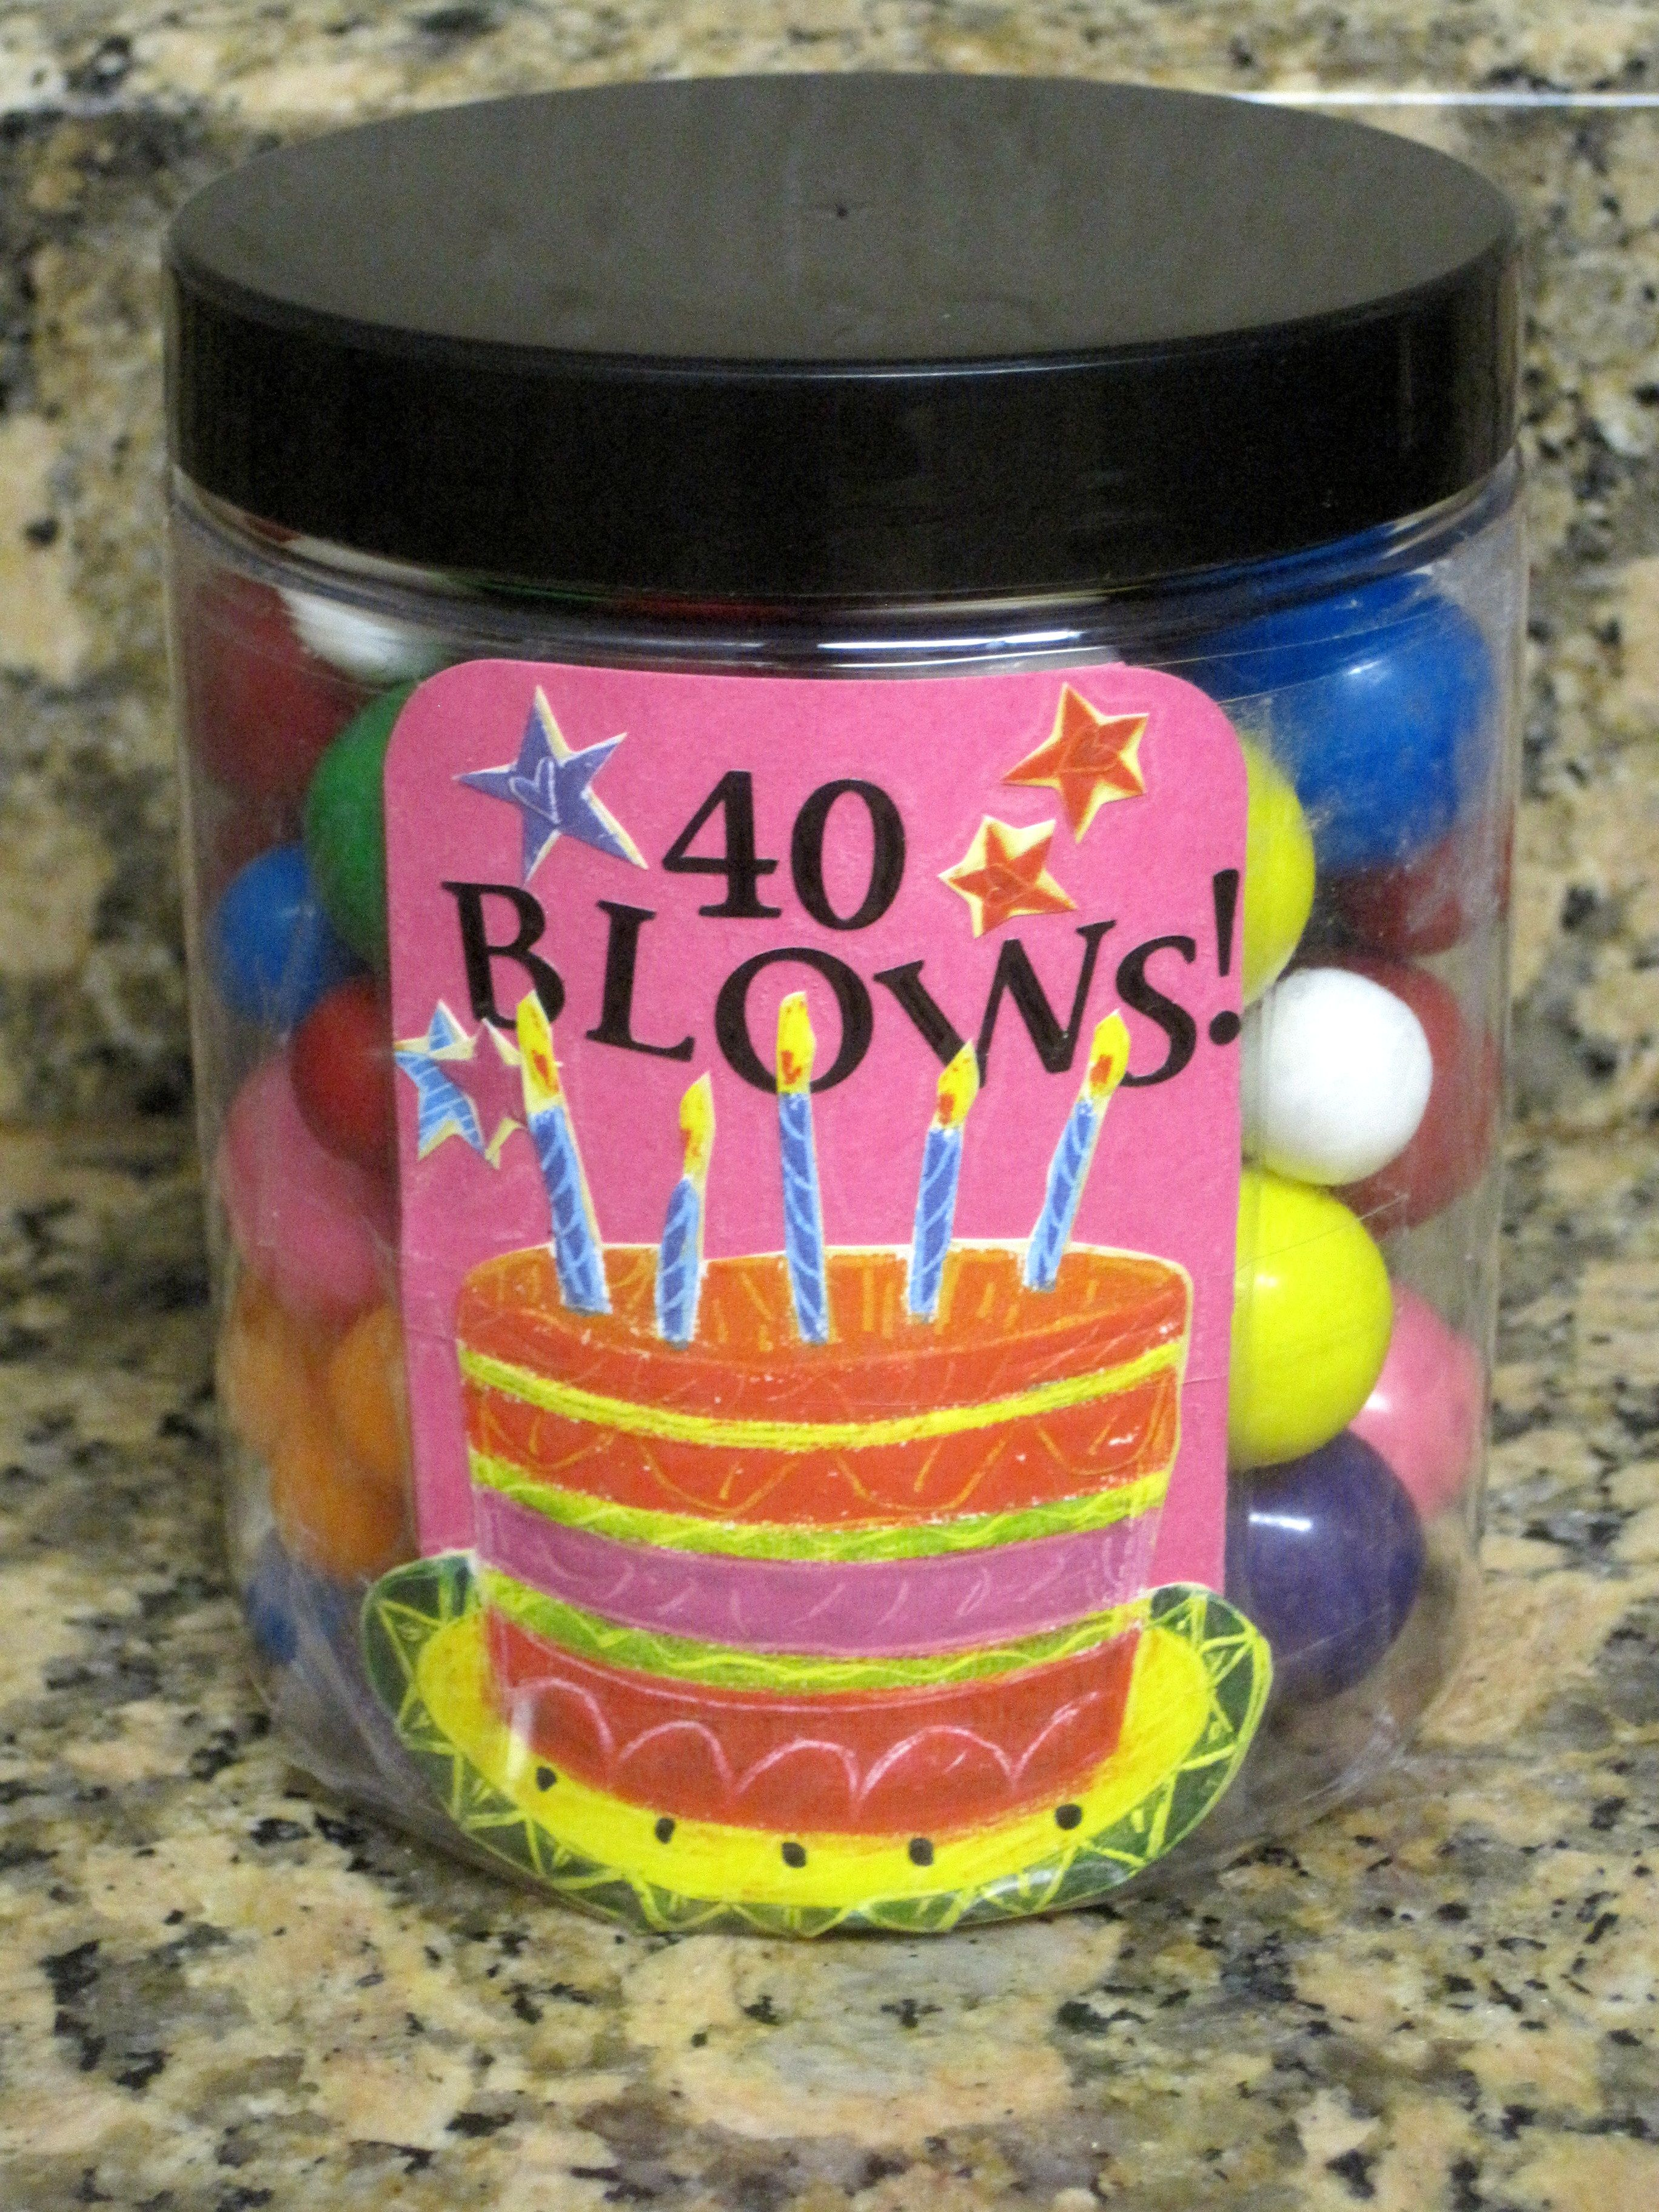 fun gag gift for 40th Birthday I purchased this jar of gumballs